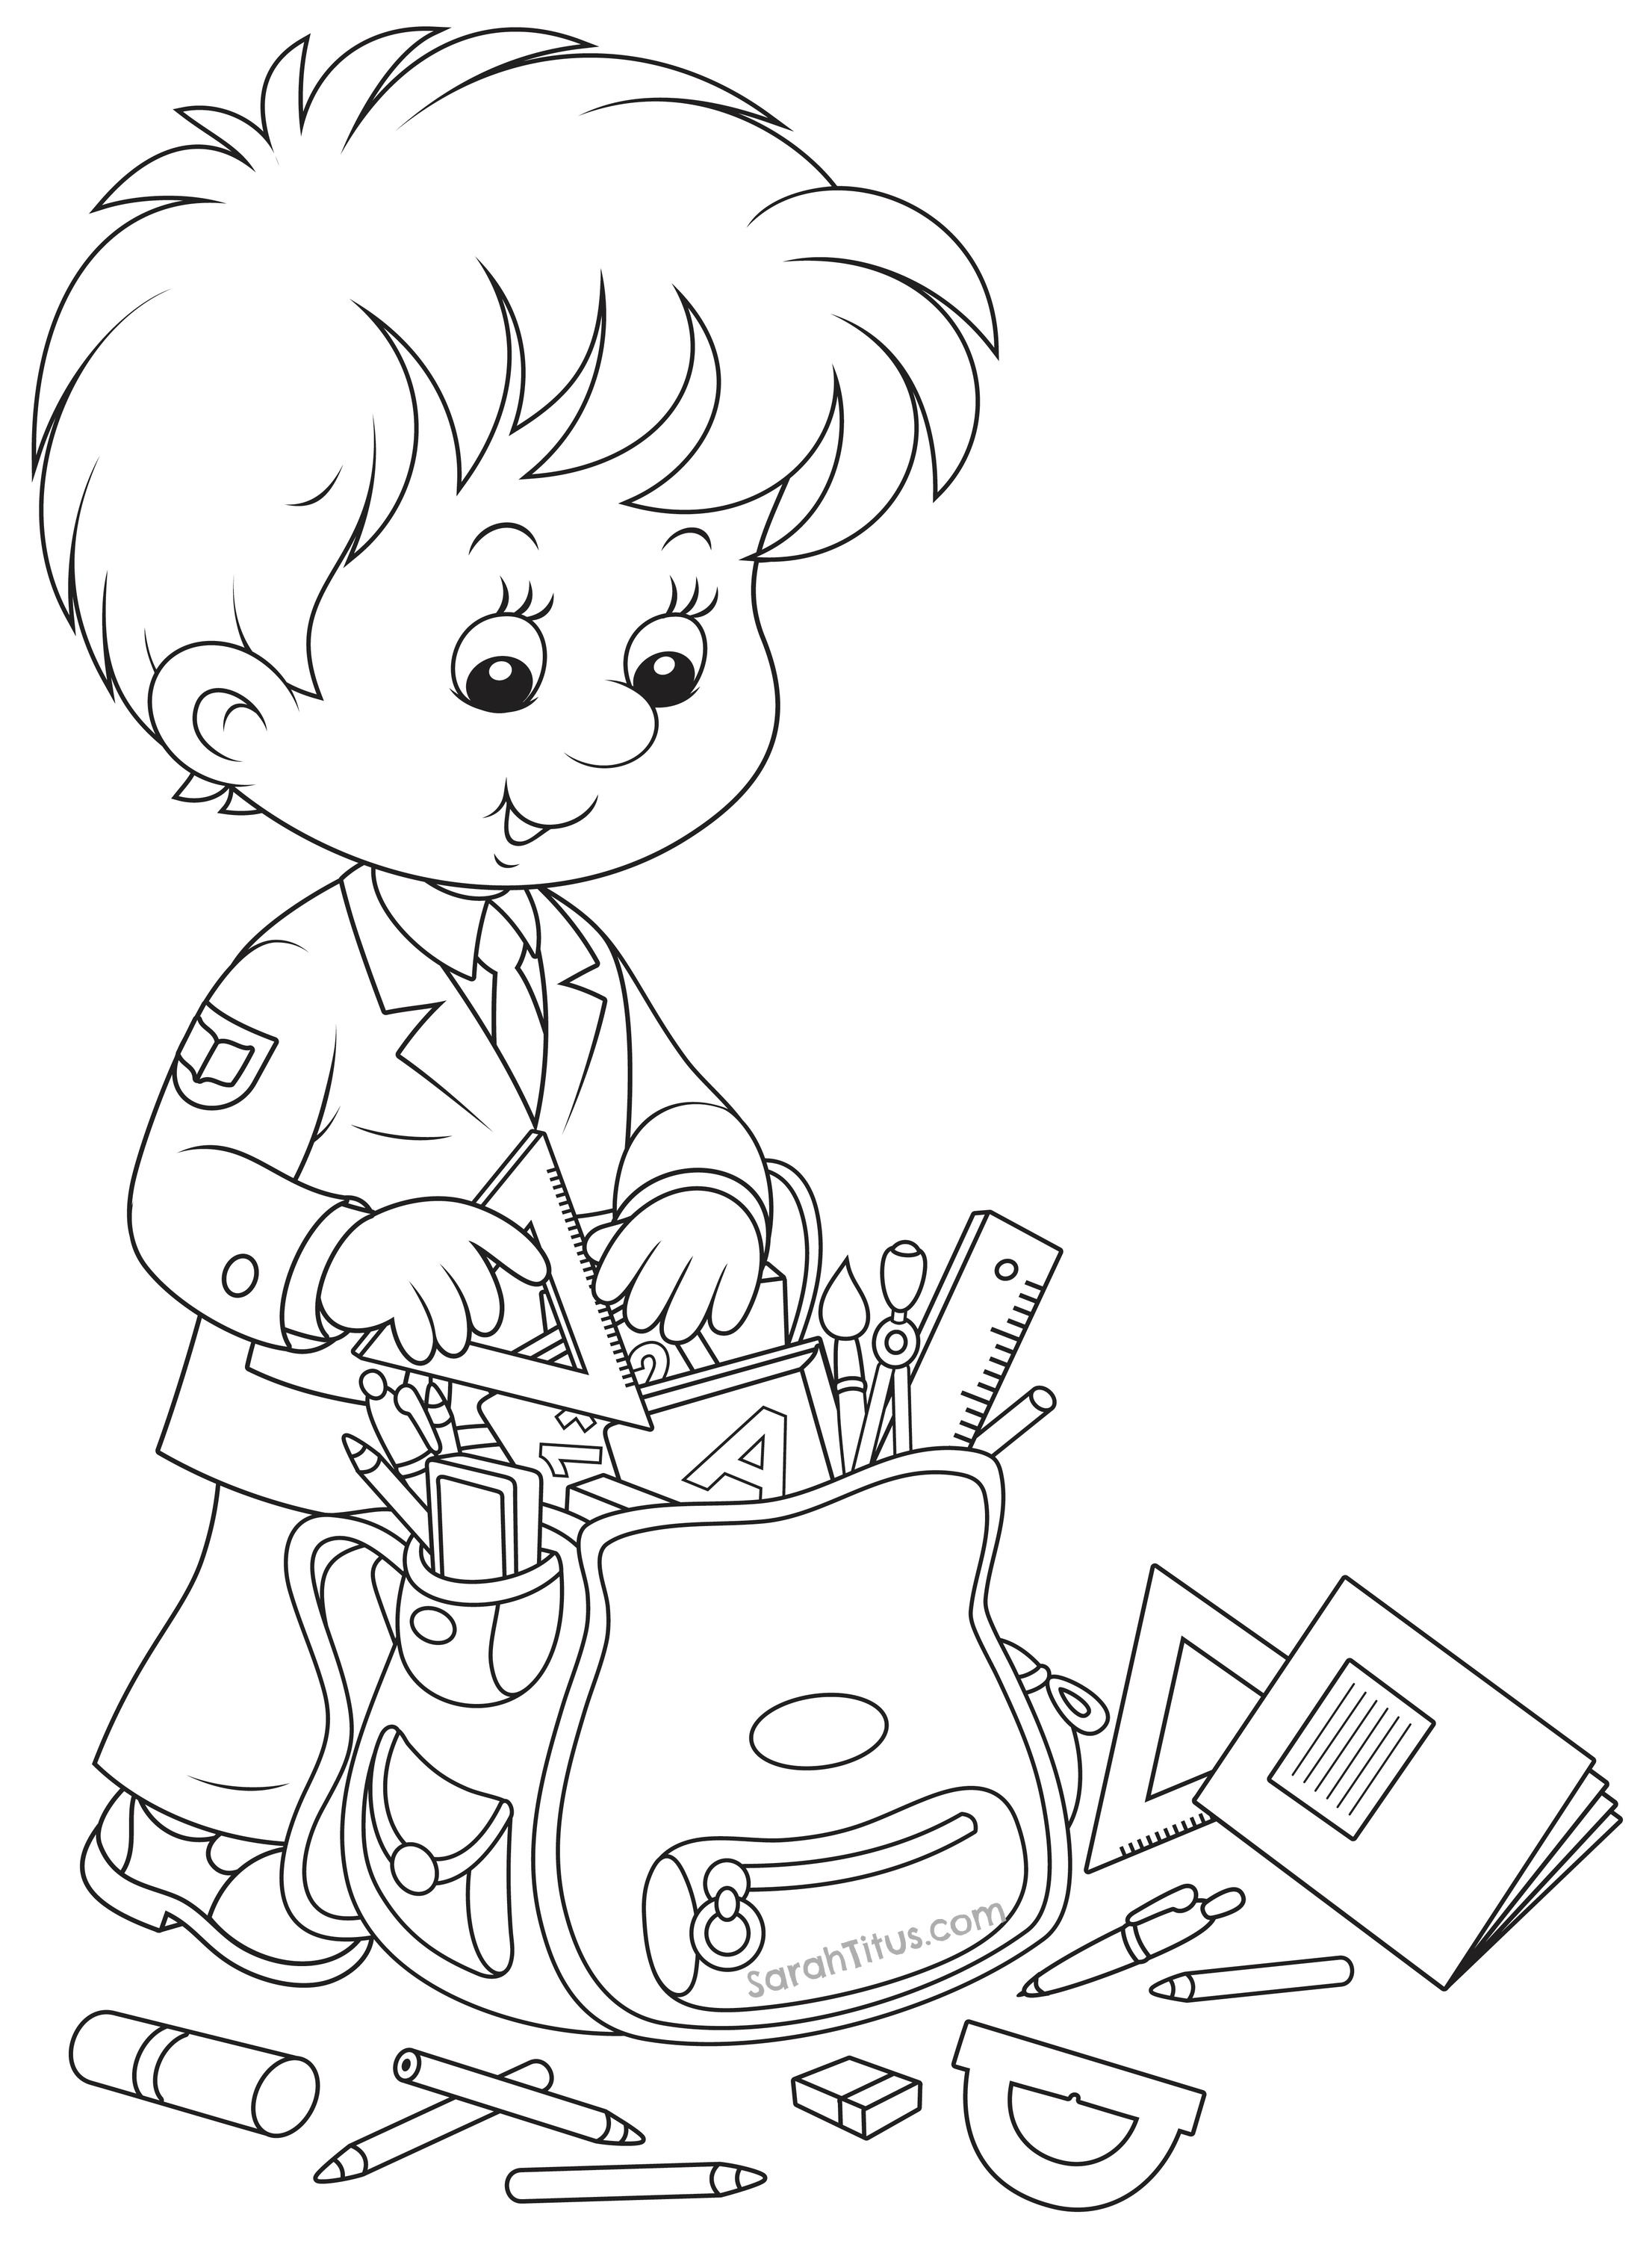 Back to School Coloring Pages | Ausmalbilder, Schulanfang und Schule